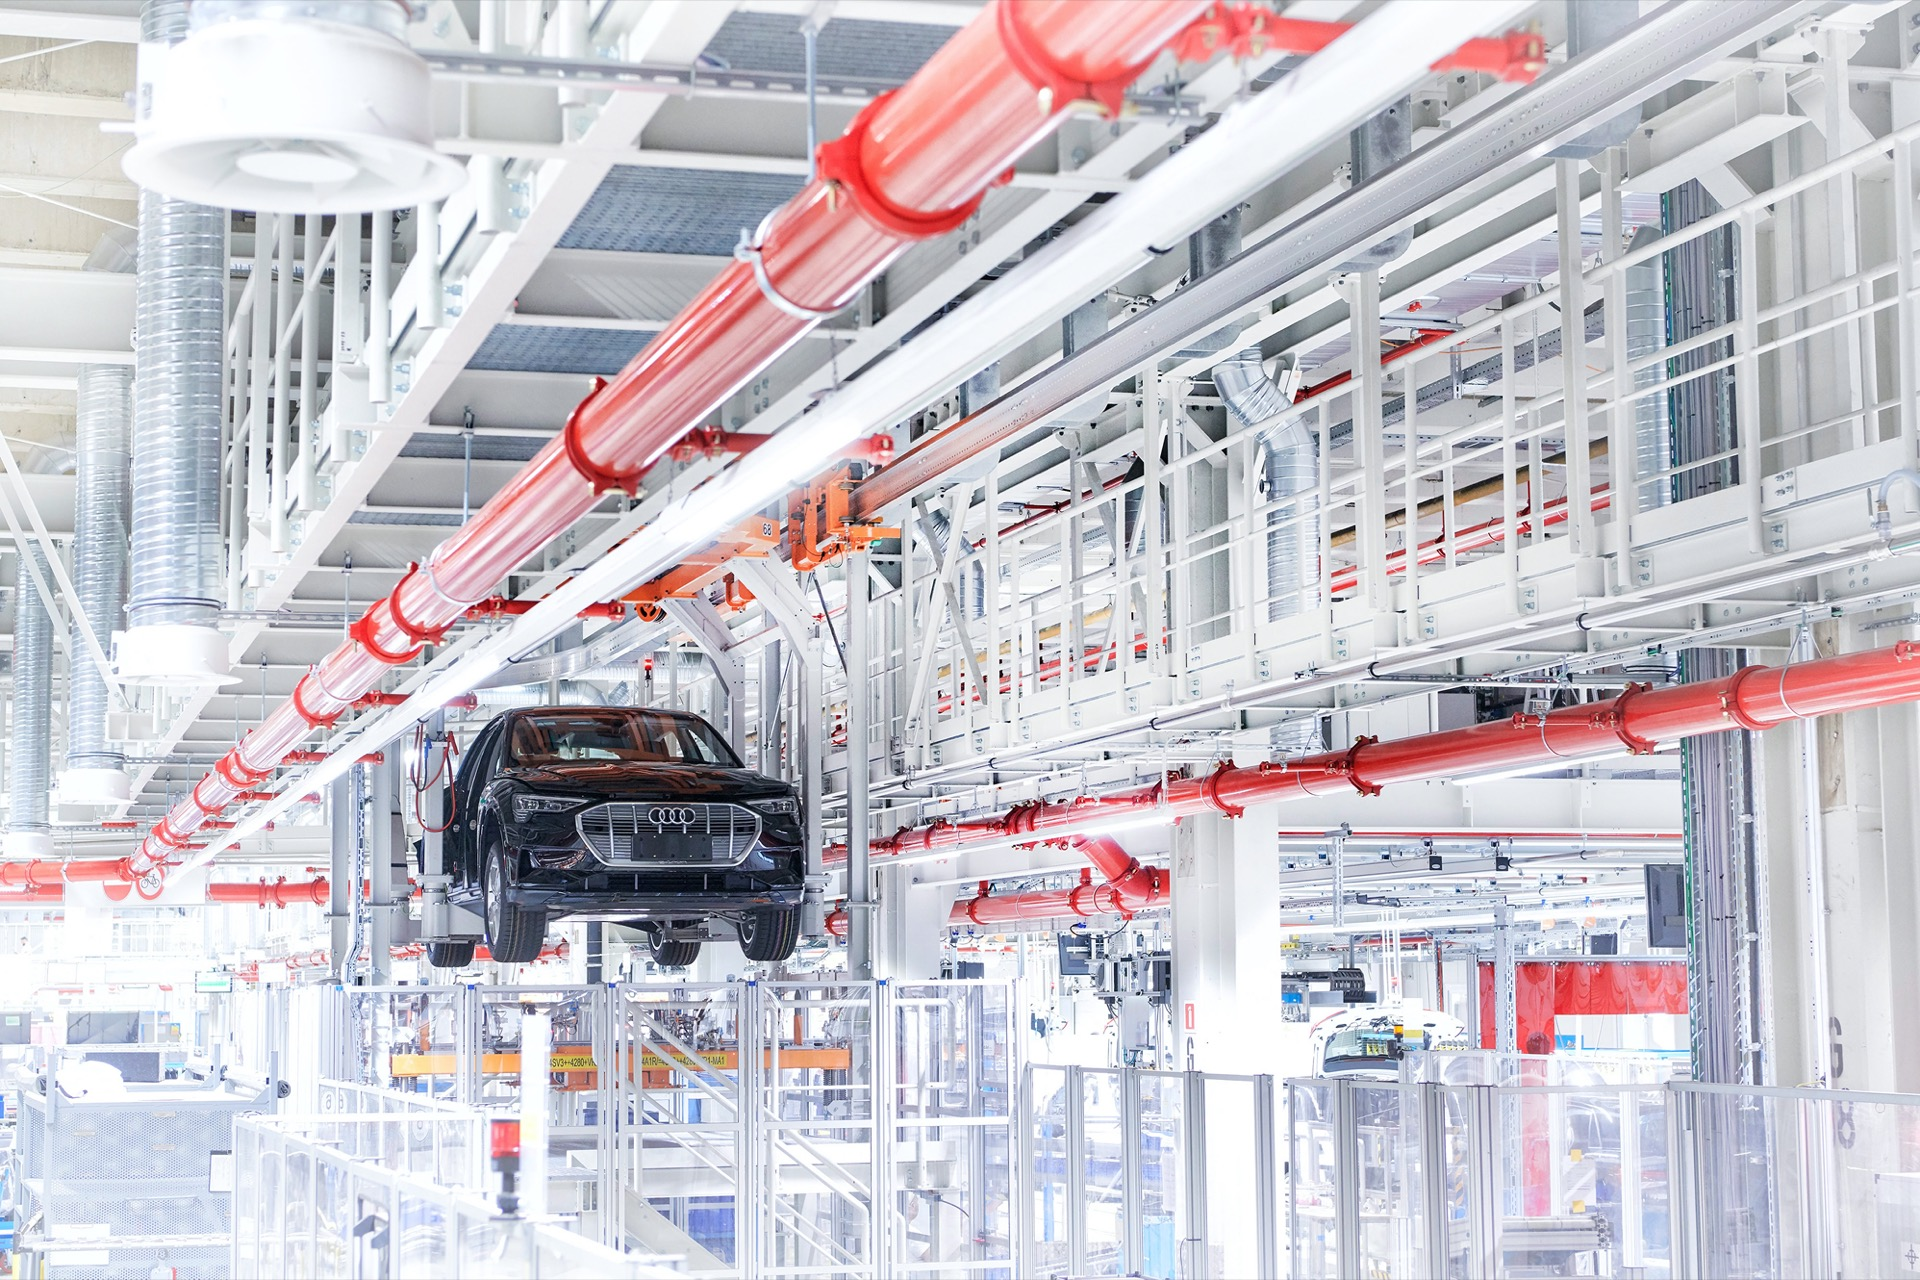 Audi E-Tron EVs add urgency to plan making production sites CO2-neutral by 2025